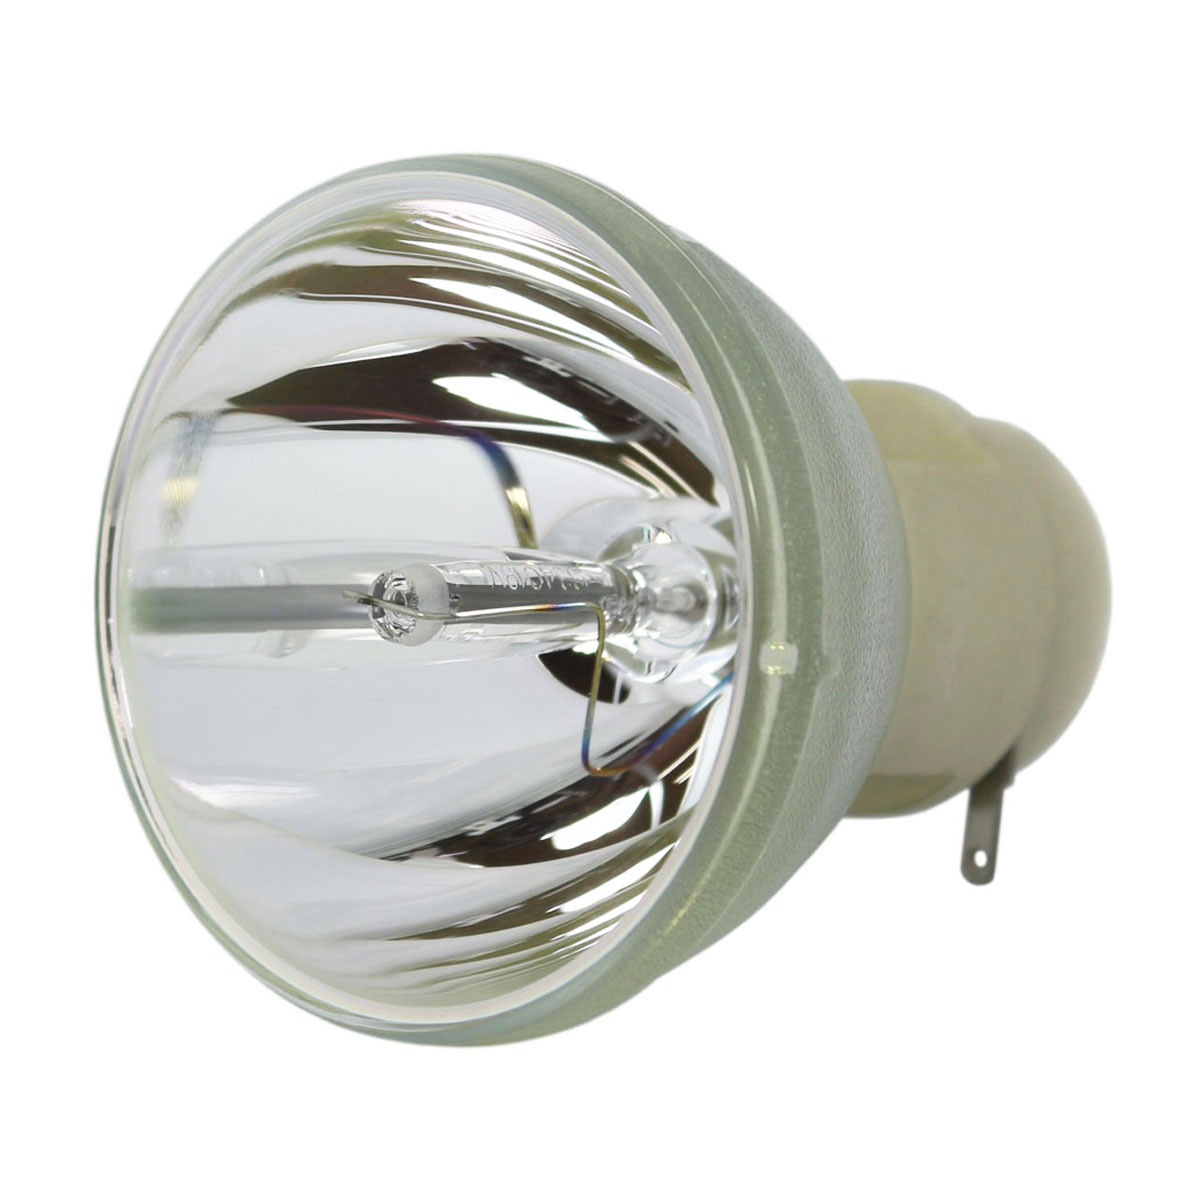 Lutema Economy Bulb for InFocus IN5535L (Lamp #1) Projector (Lamp with Housing) - image 5 de 5